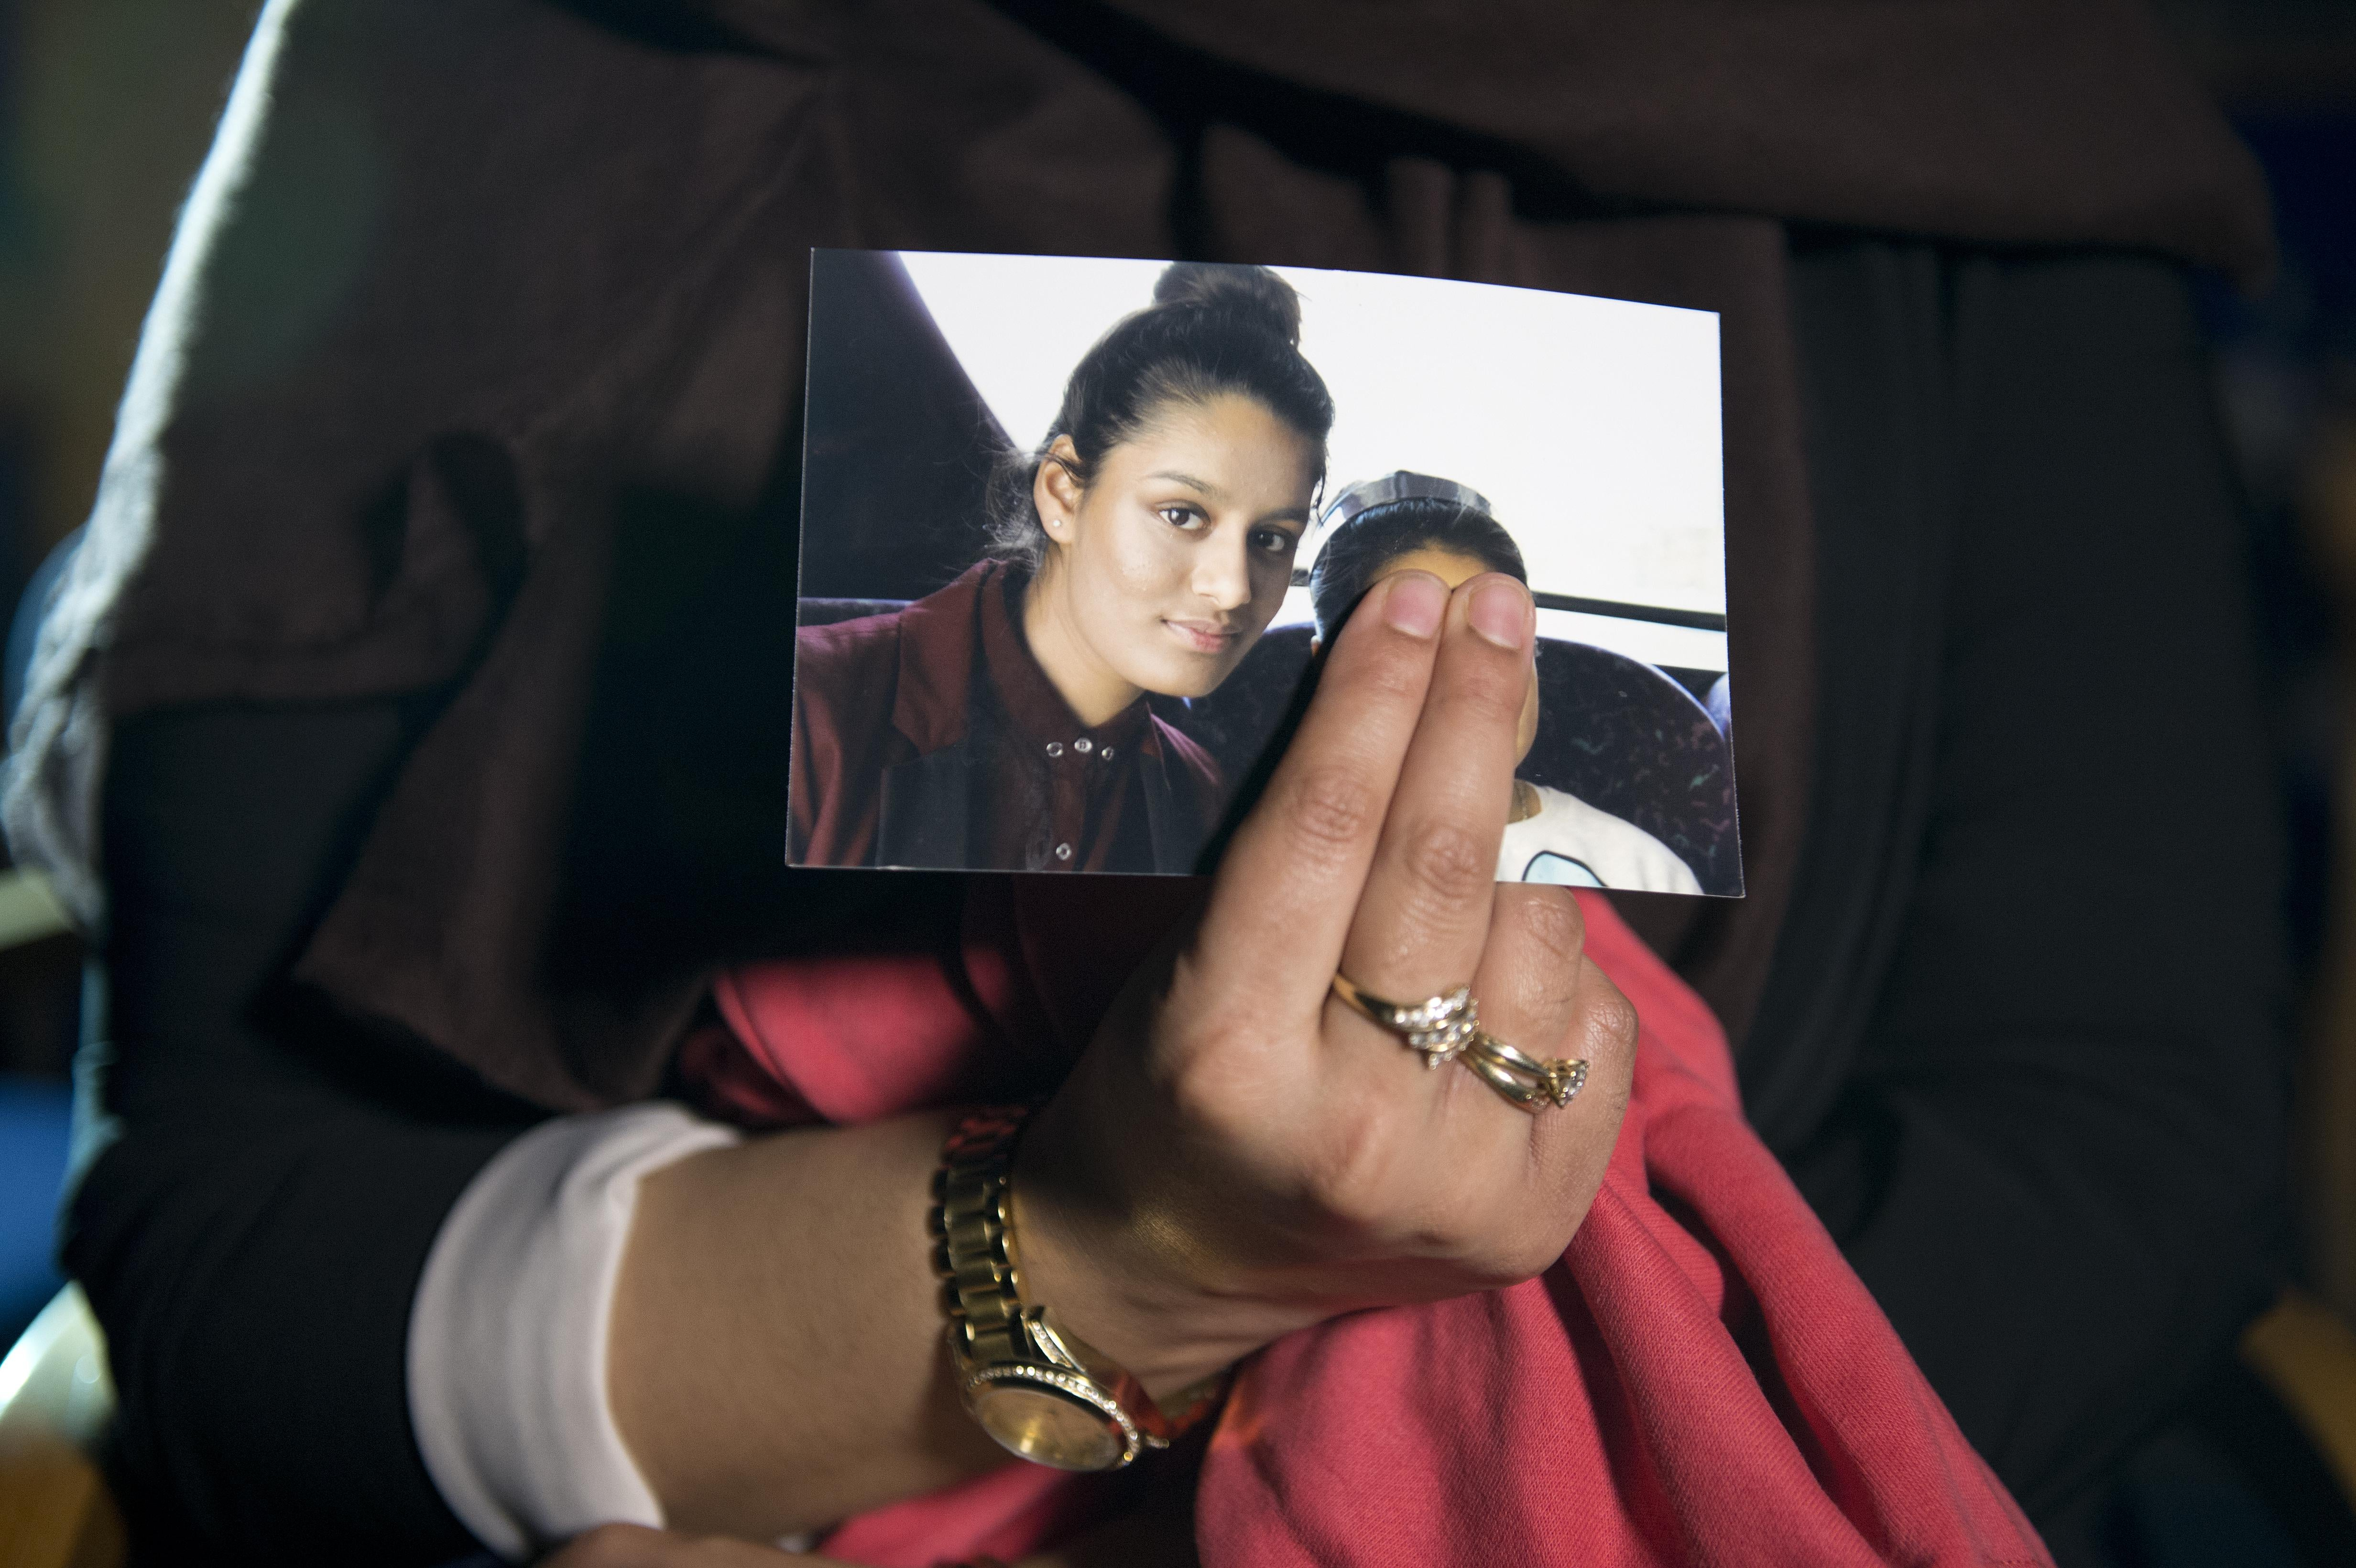 Renu Begum, eldest sister of Shamima Begum, 15, holds her sister's photo as she is interviewed by the media at New Scotland Yard on February 22, 2015 in London, England.